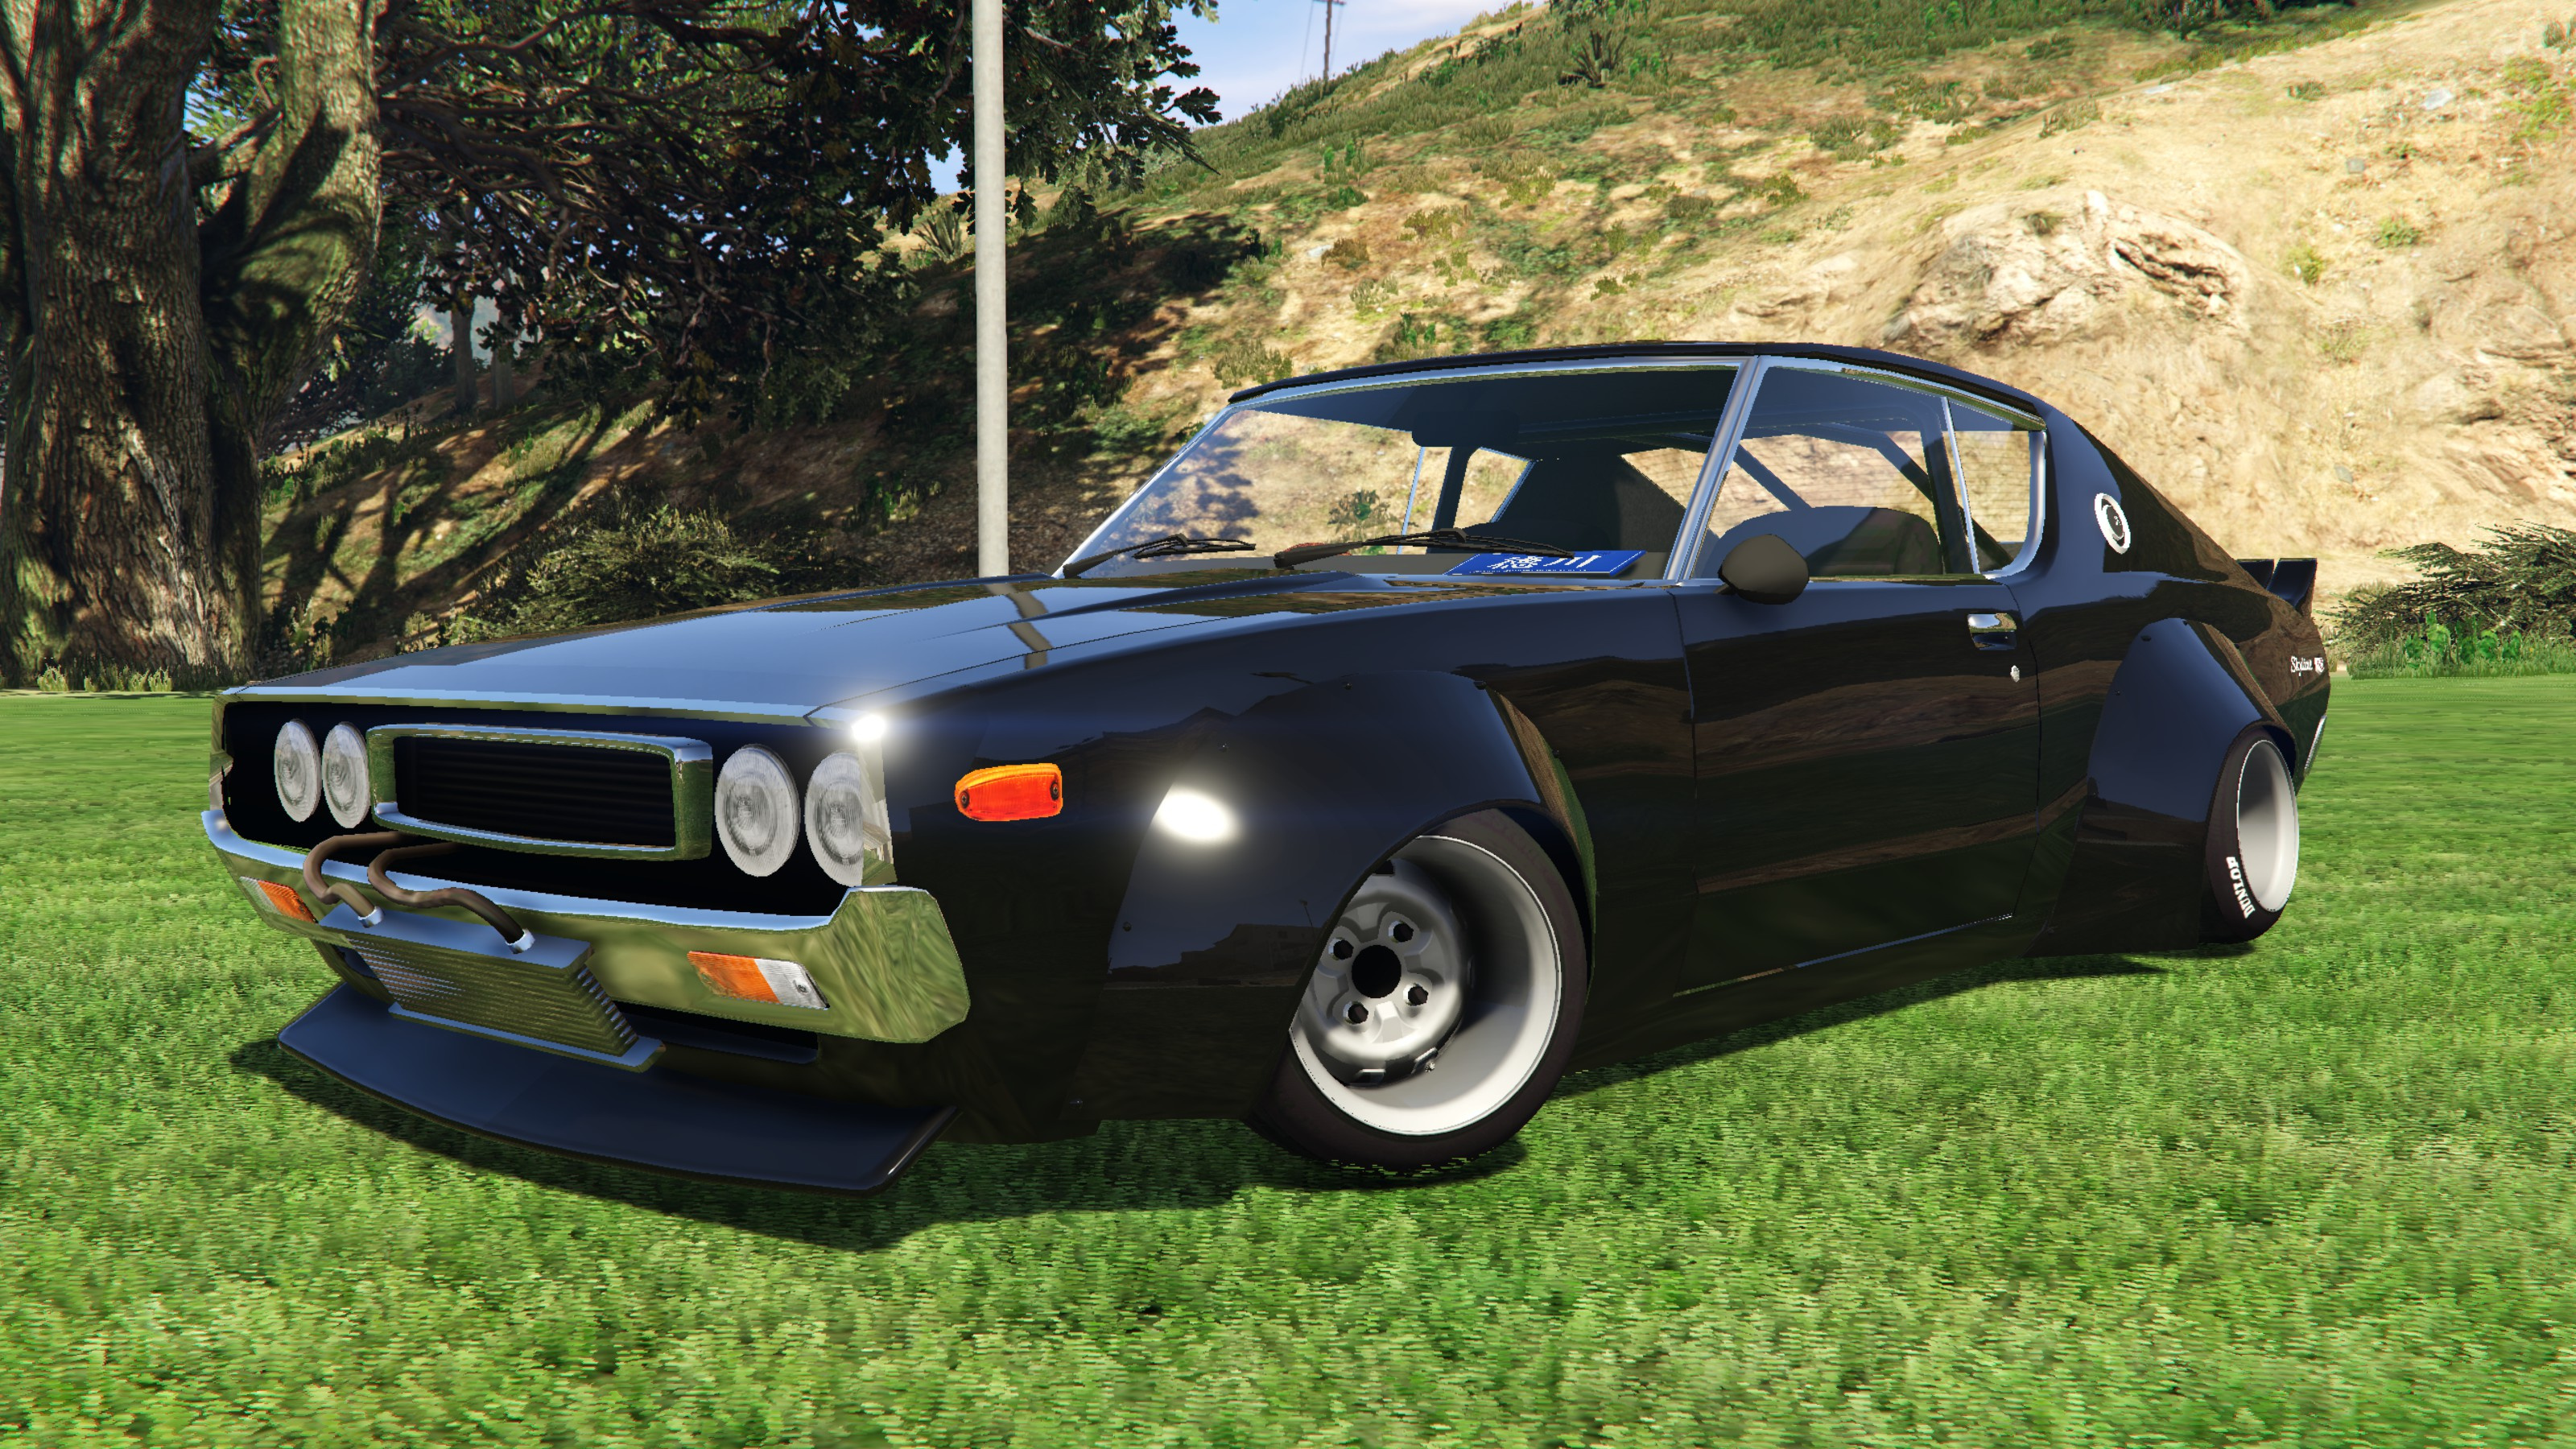 1972 nissan skyline gt r ht kenmeri c110 replace gta5. Black Bedroom Furniture Sets. Home Design Ideas